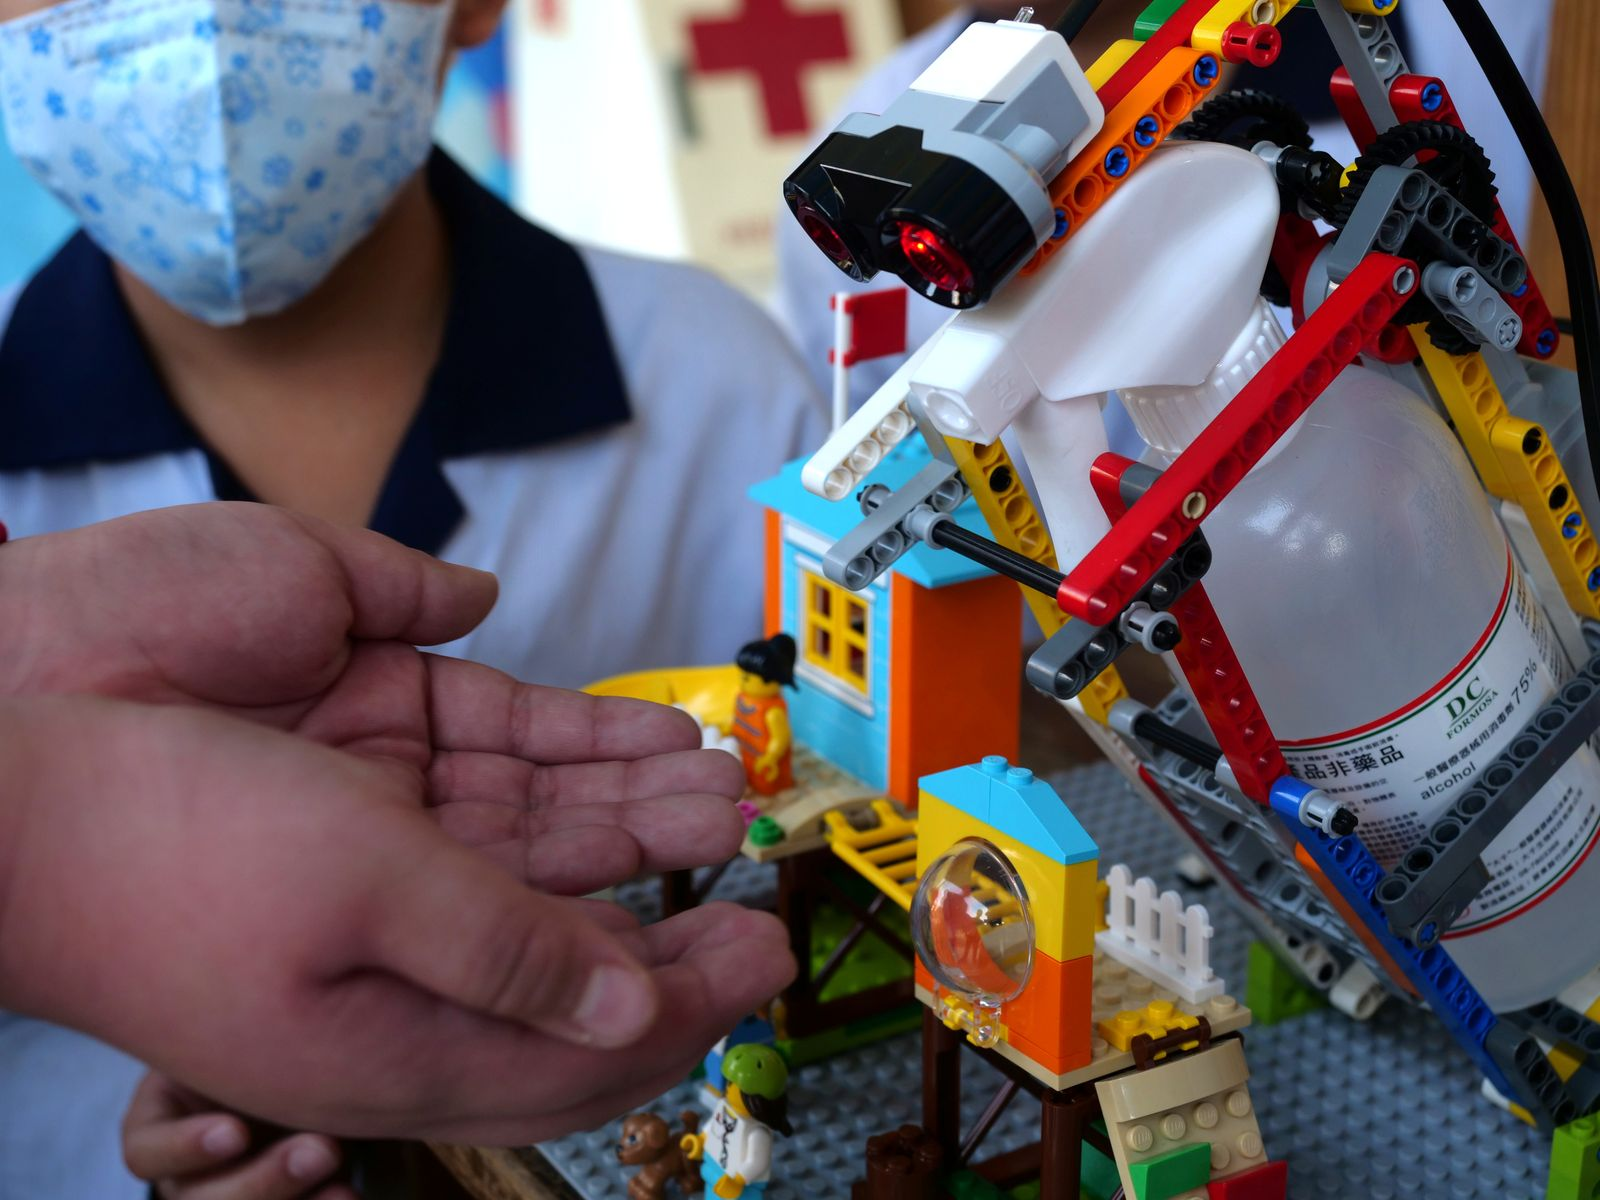 Elementary school student uses a self-built motion sensor controlled disinfectant dispenser assembled with Lego parts, following a novel coronavirus outbreak, in the southern Taiwanese city of Kaohsiung, Taiwan